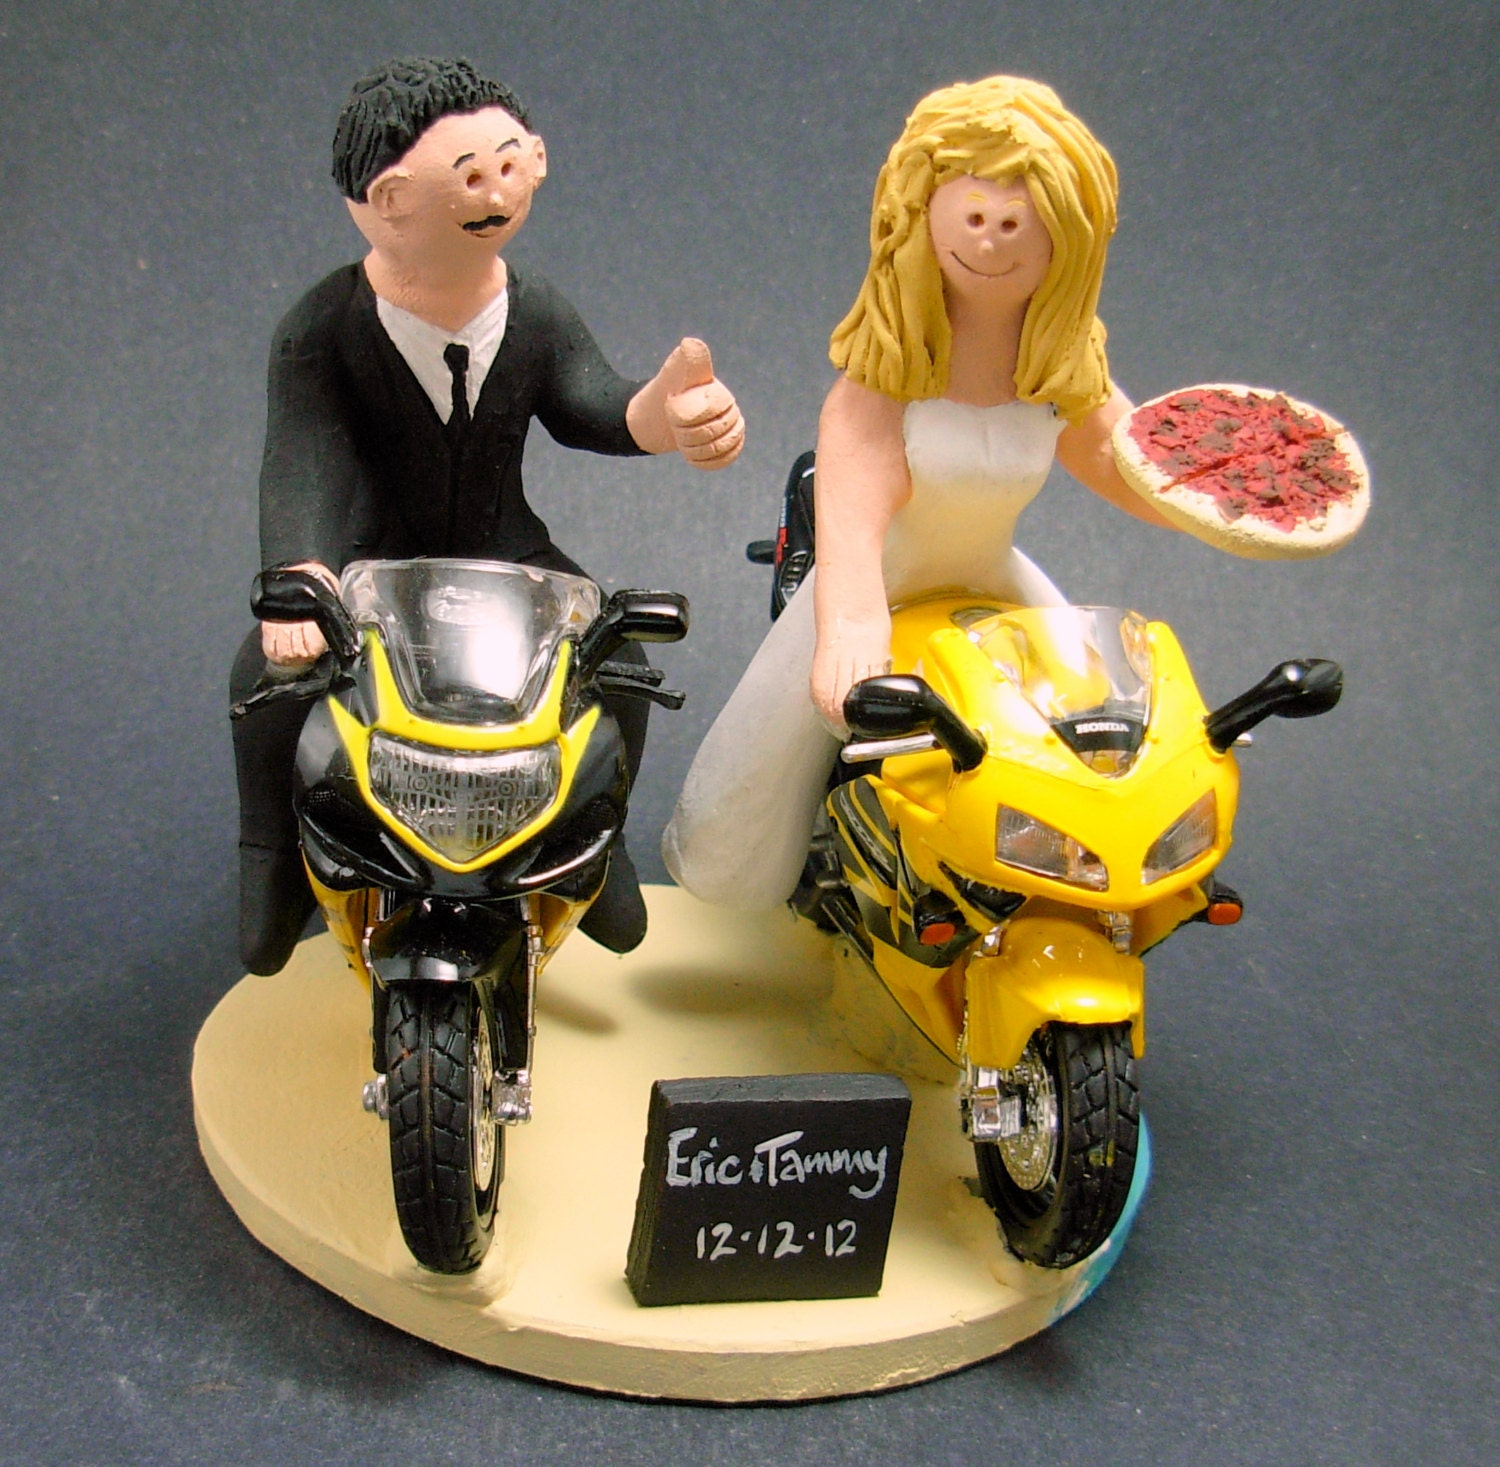 Sportbike Motorcycle For Bride And Groom Wedding Cake Topper Motorcycle Wedding Cake Topper Motorcycle Riders Wedding Cake Topper